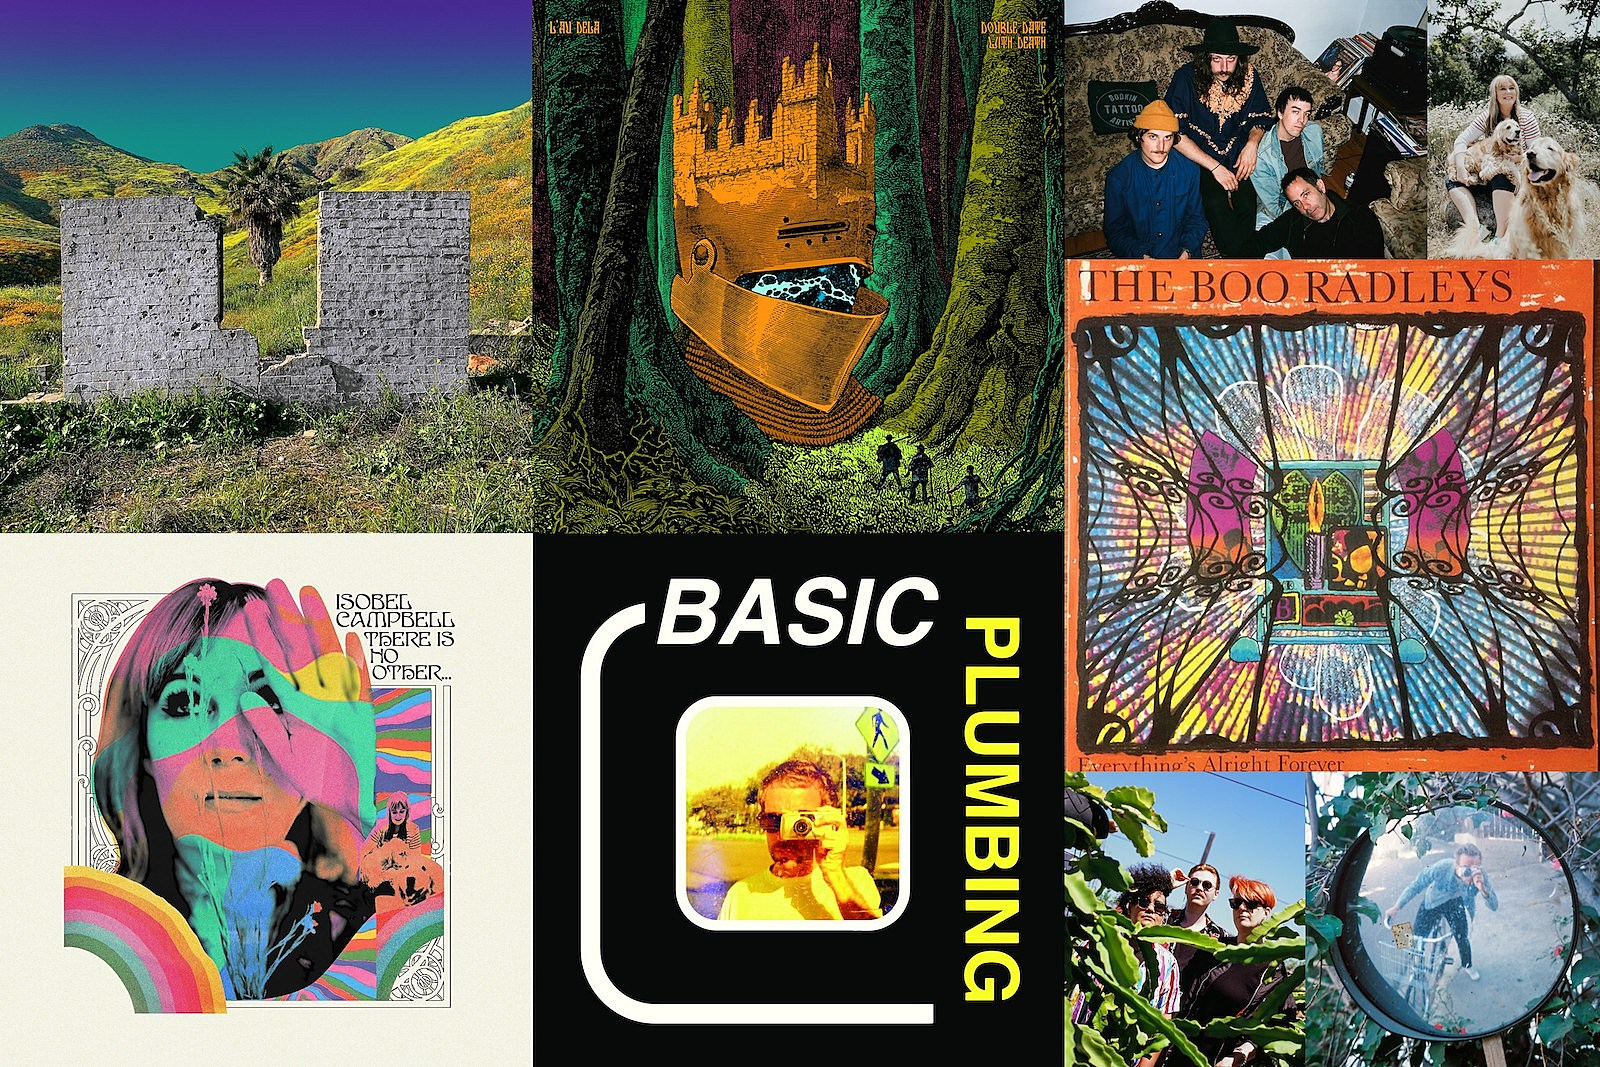 shopping, isobel campbell, double date with death, basic plumbing, the boo radleys